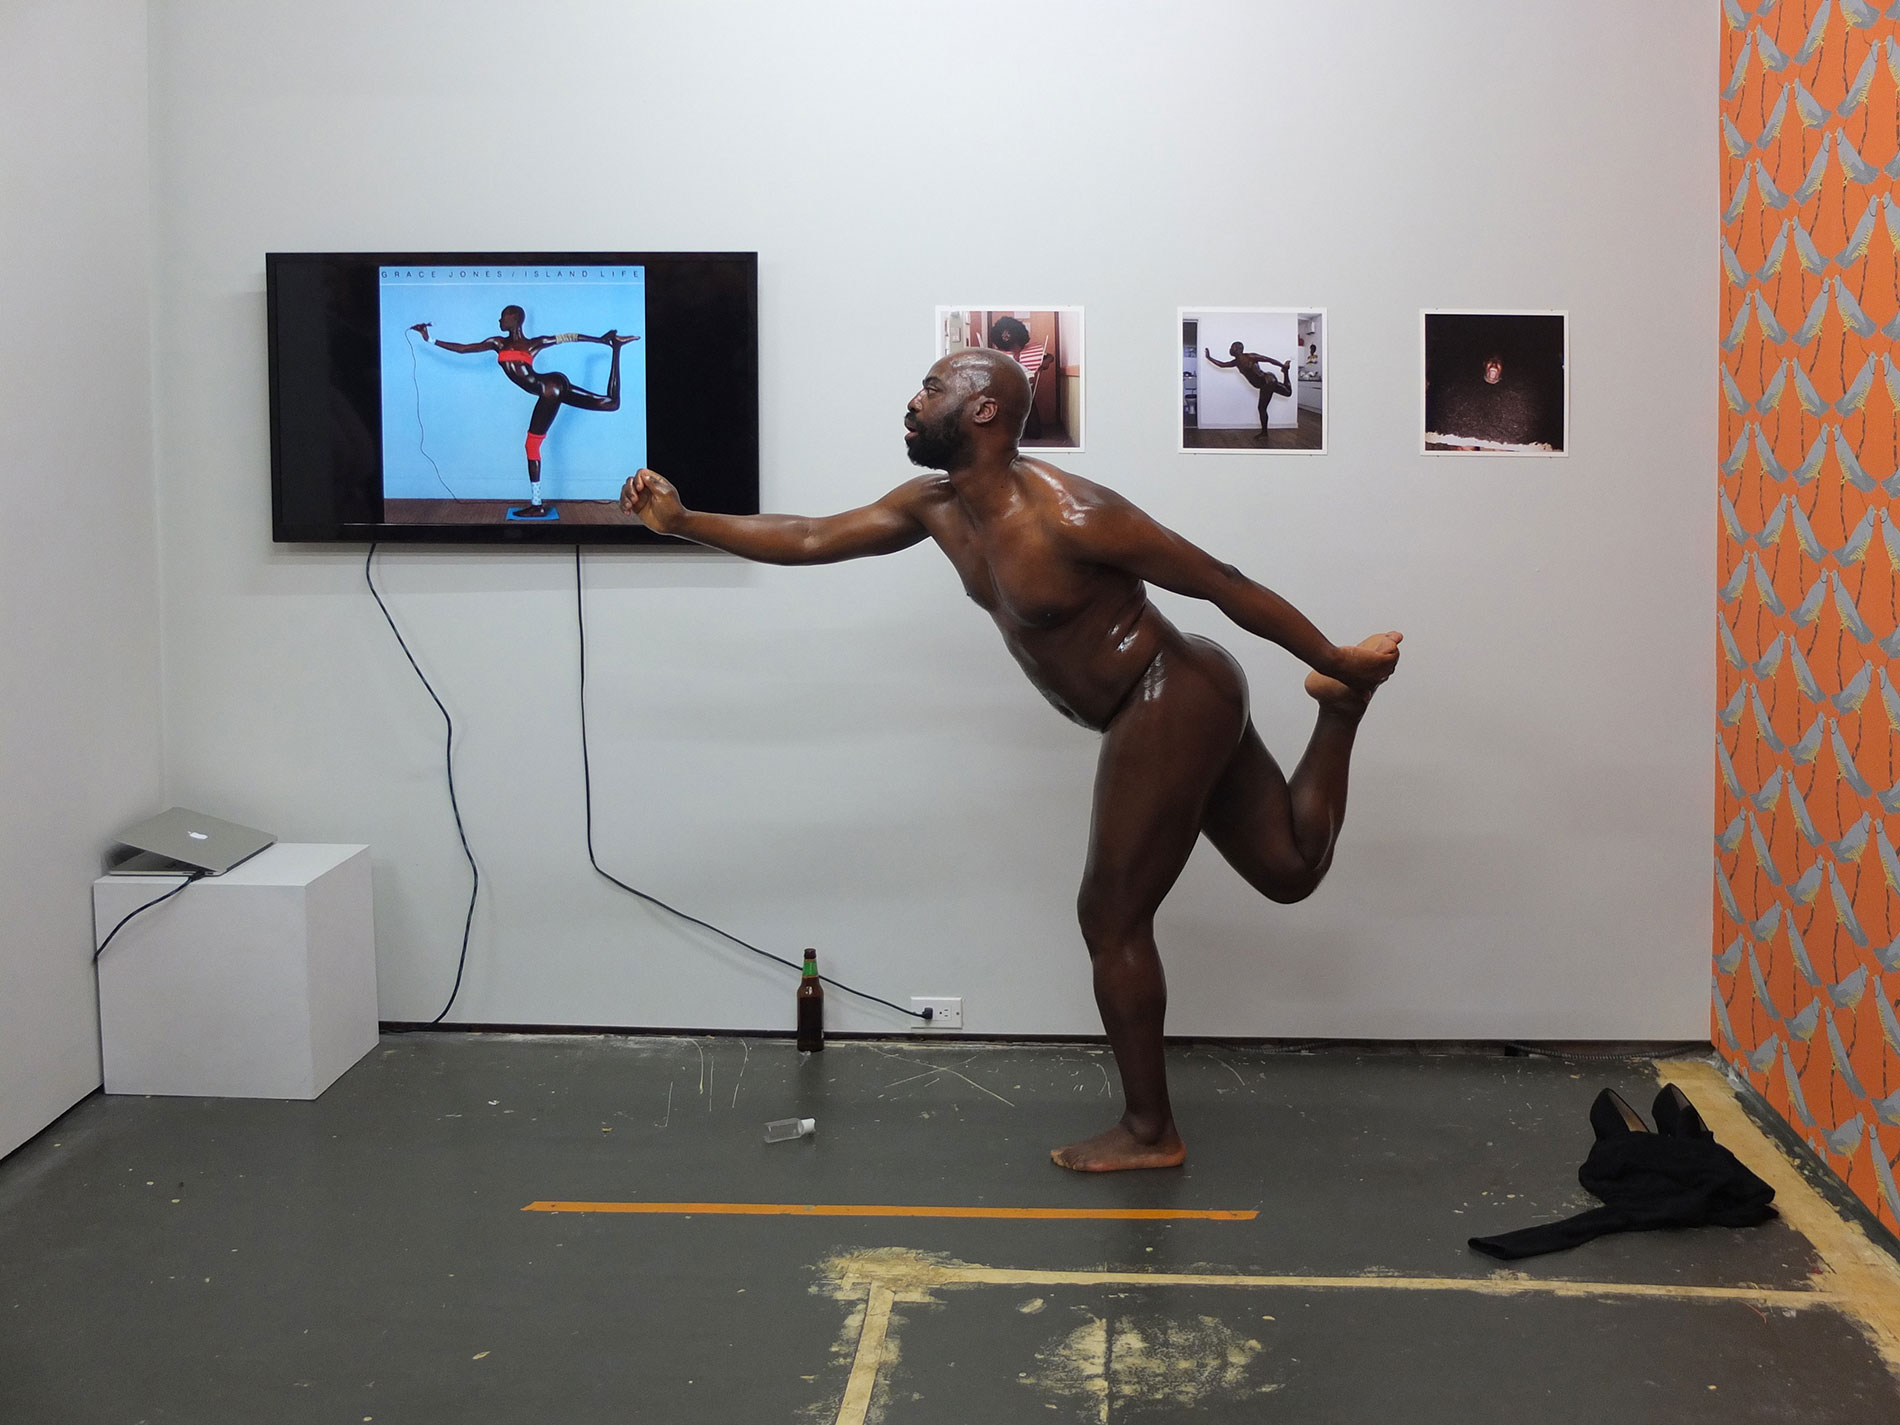 harold performing covers in art exhibition